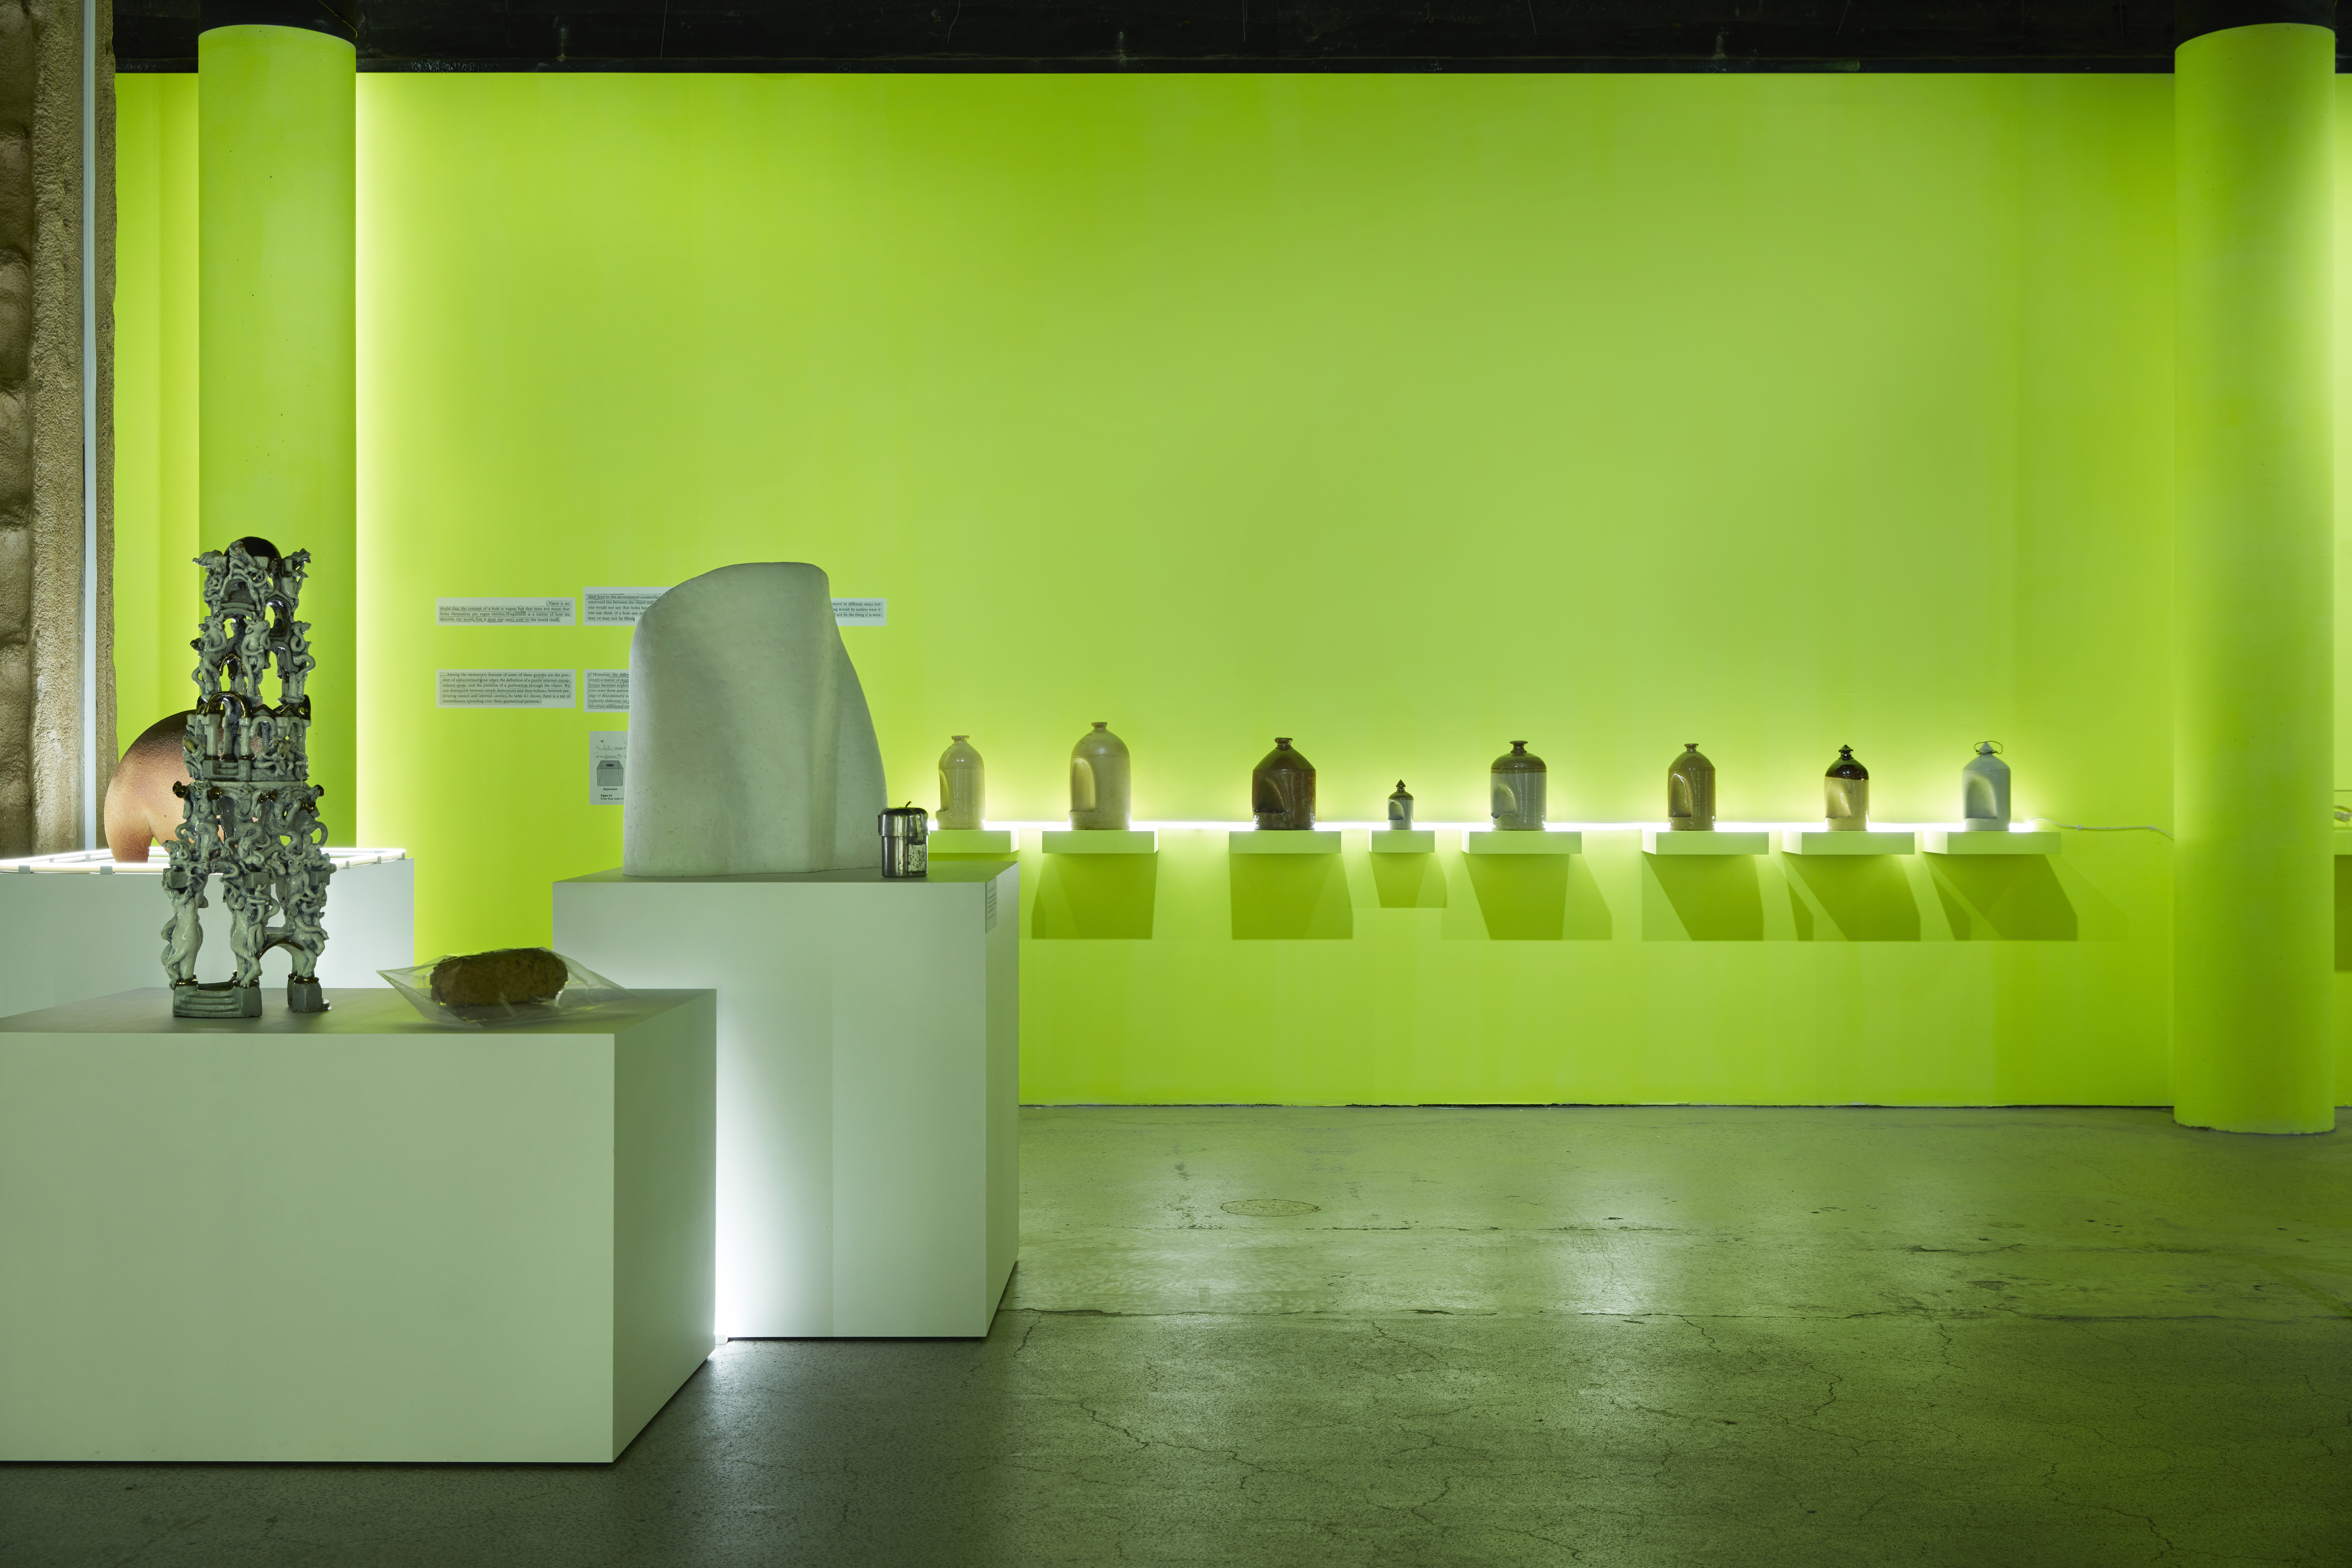 Installation view of the I Prefer Talking to Doctors About Something Else exhibition showing 'Milos 1' by ceramicist Marea Gazzard next to an emergency breathing apparatus and a series of ceramic bird feeders in the background.